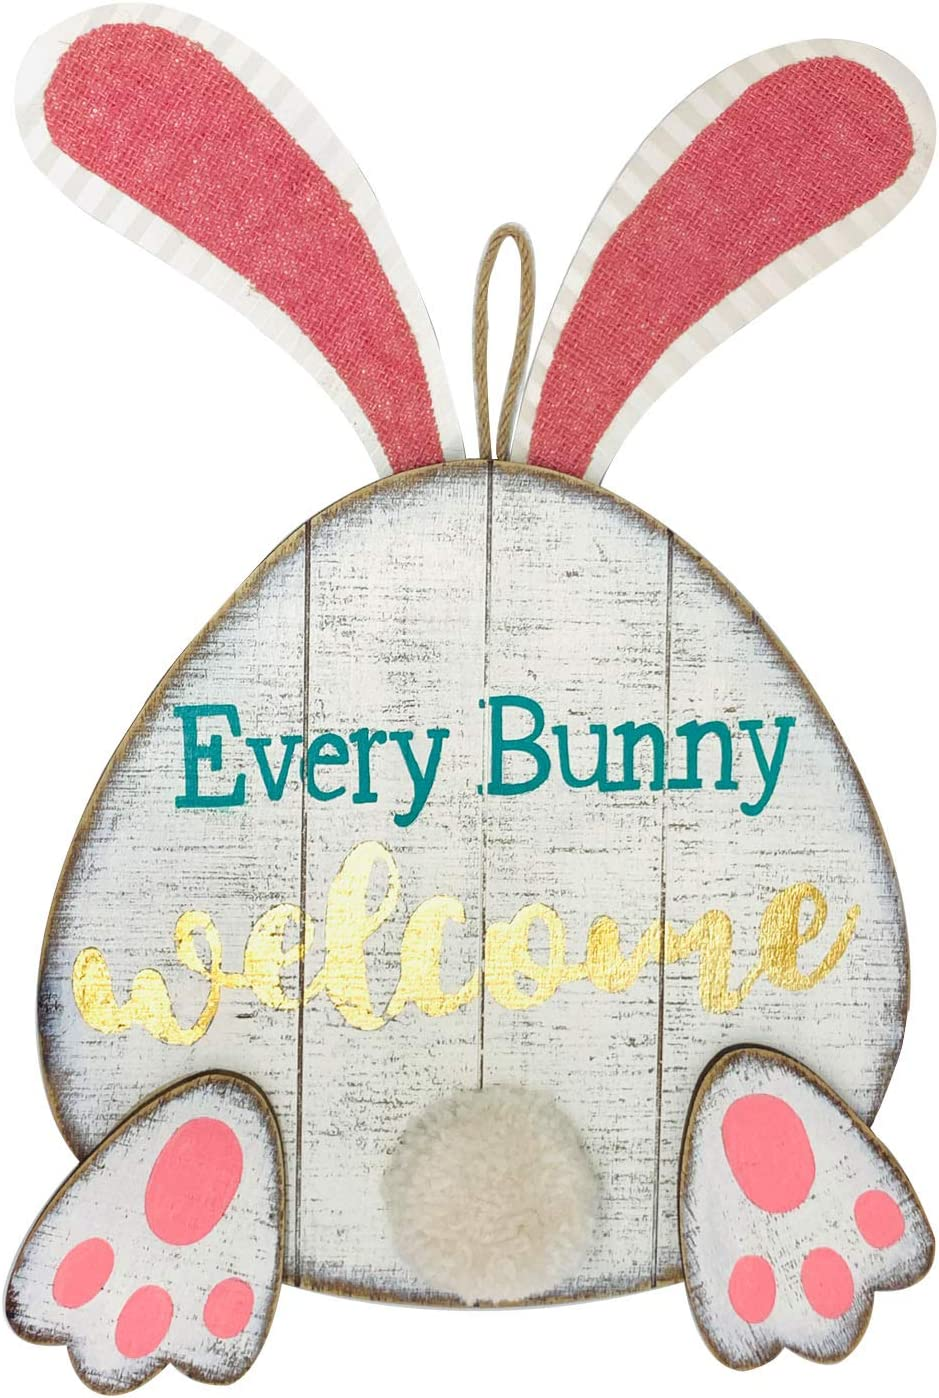 ANROD Easter Rustic Bunny Wall Hanging Decoration for Home,Wood Rabbit Welcome Sign Decor,Every Bunny Welcome Decorations with 3D Pom Pom Tail